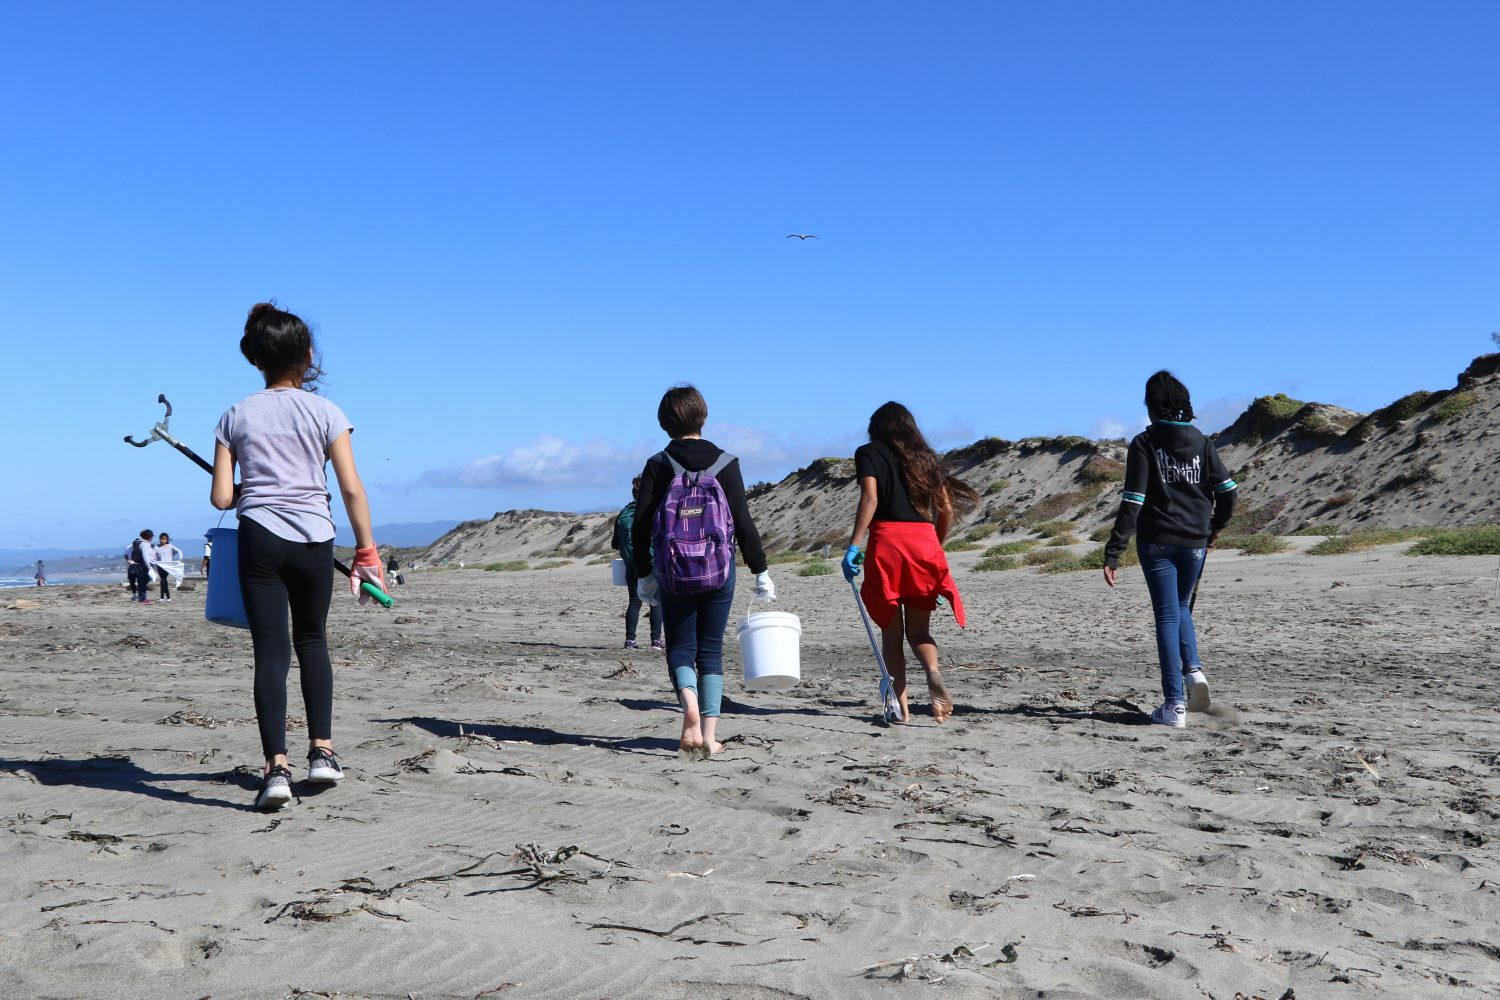 Four girls walk towards dunes on a beach with buckets, gloves, and grabbers in hand.